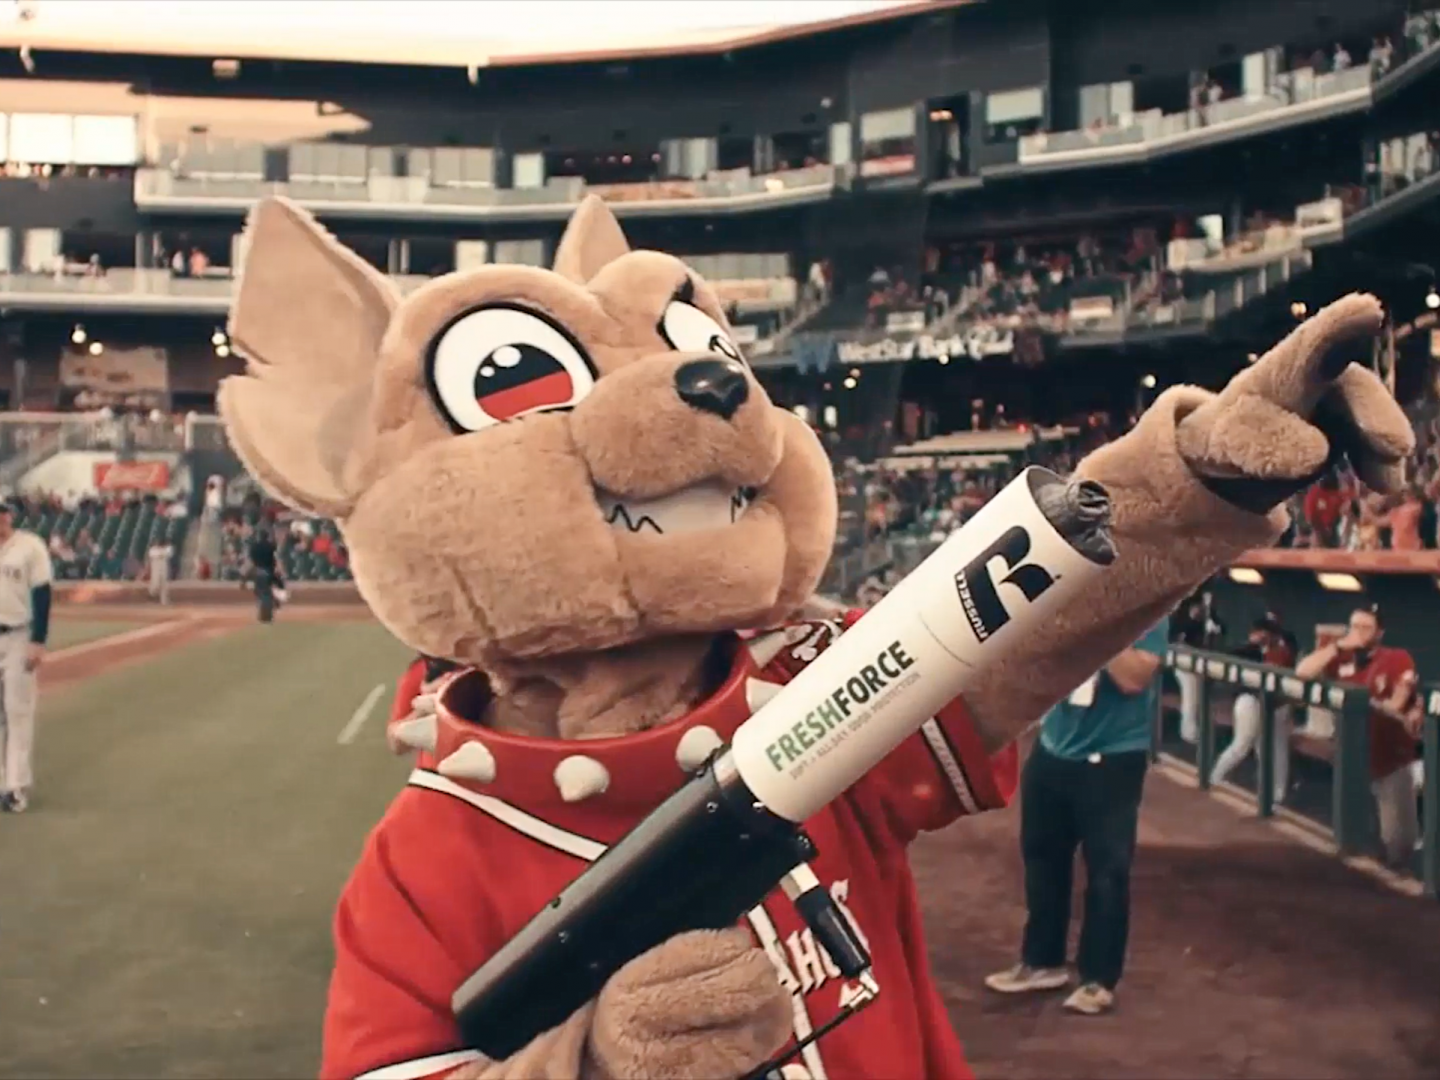 Image for MINOR LEAGUE MASCOTS, MAJOR LEAGUE FUNK | CHICO